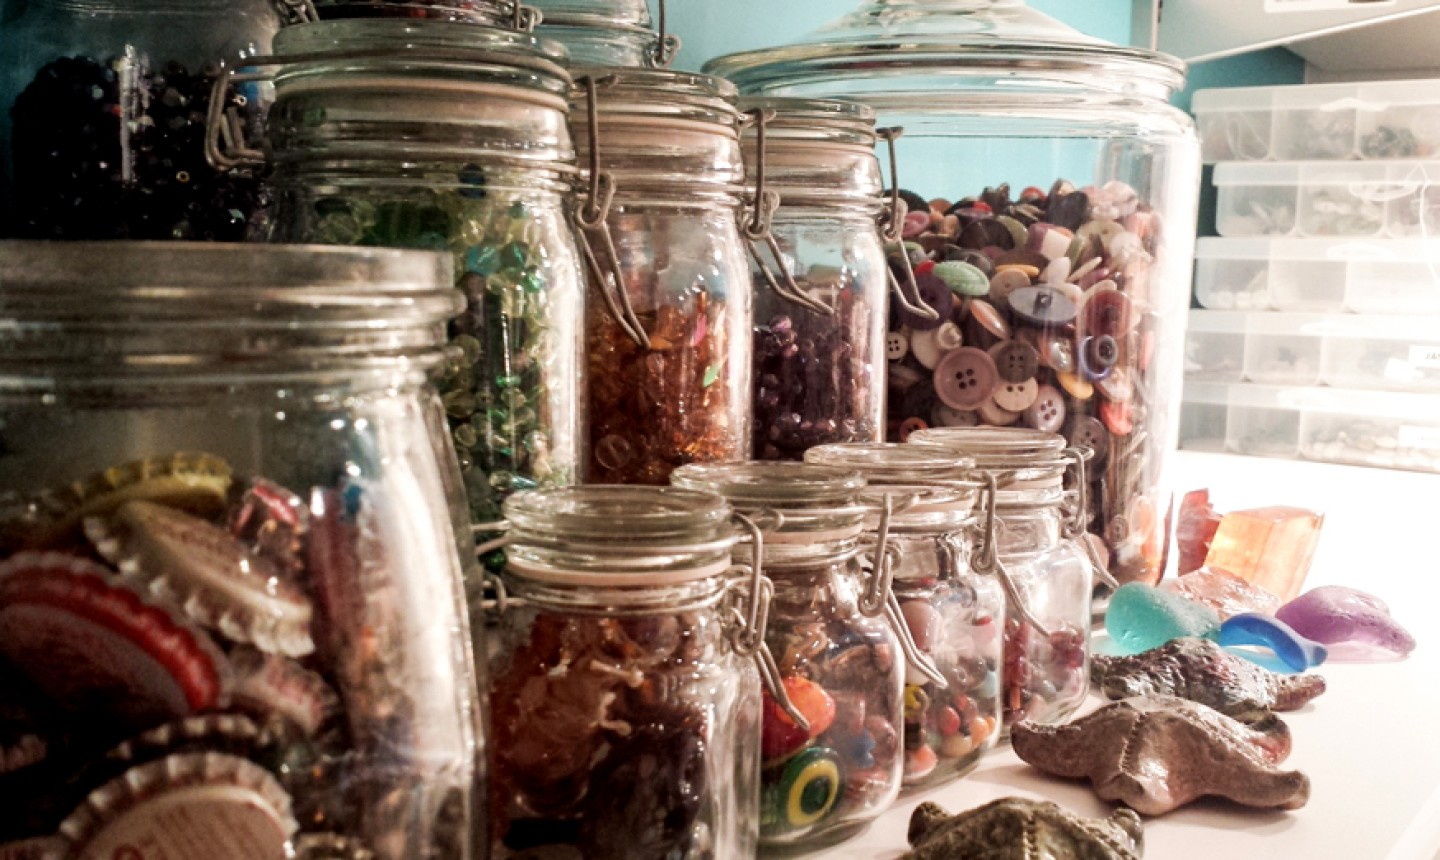 stored supplies in glass jars